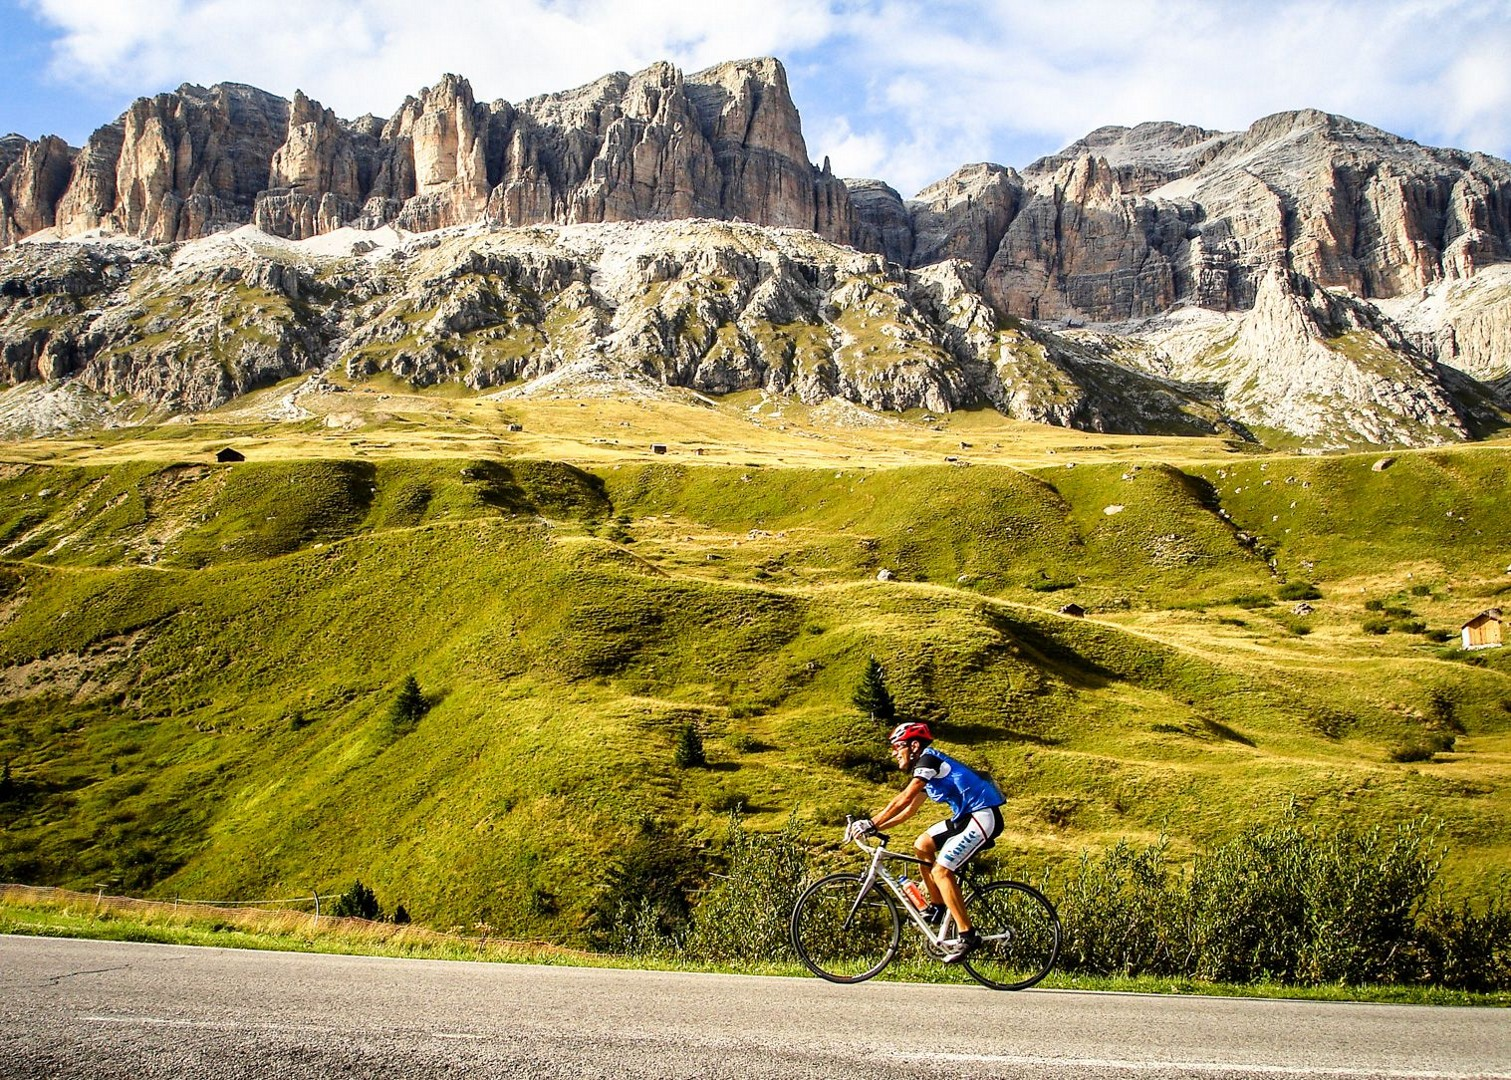 Droad-cycling-cols-of-italy-switzerland-and-france.jpg - Italy - Alps and Dolomites - Giants of the Giro - Guided Road Cycling Holiday - Road Cycling